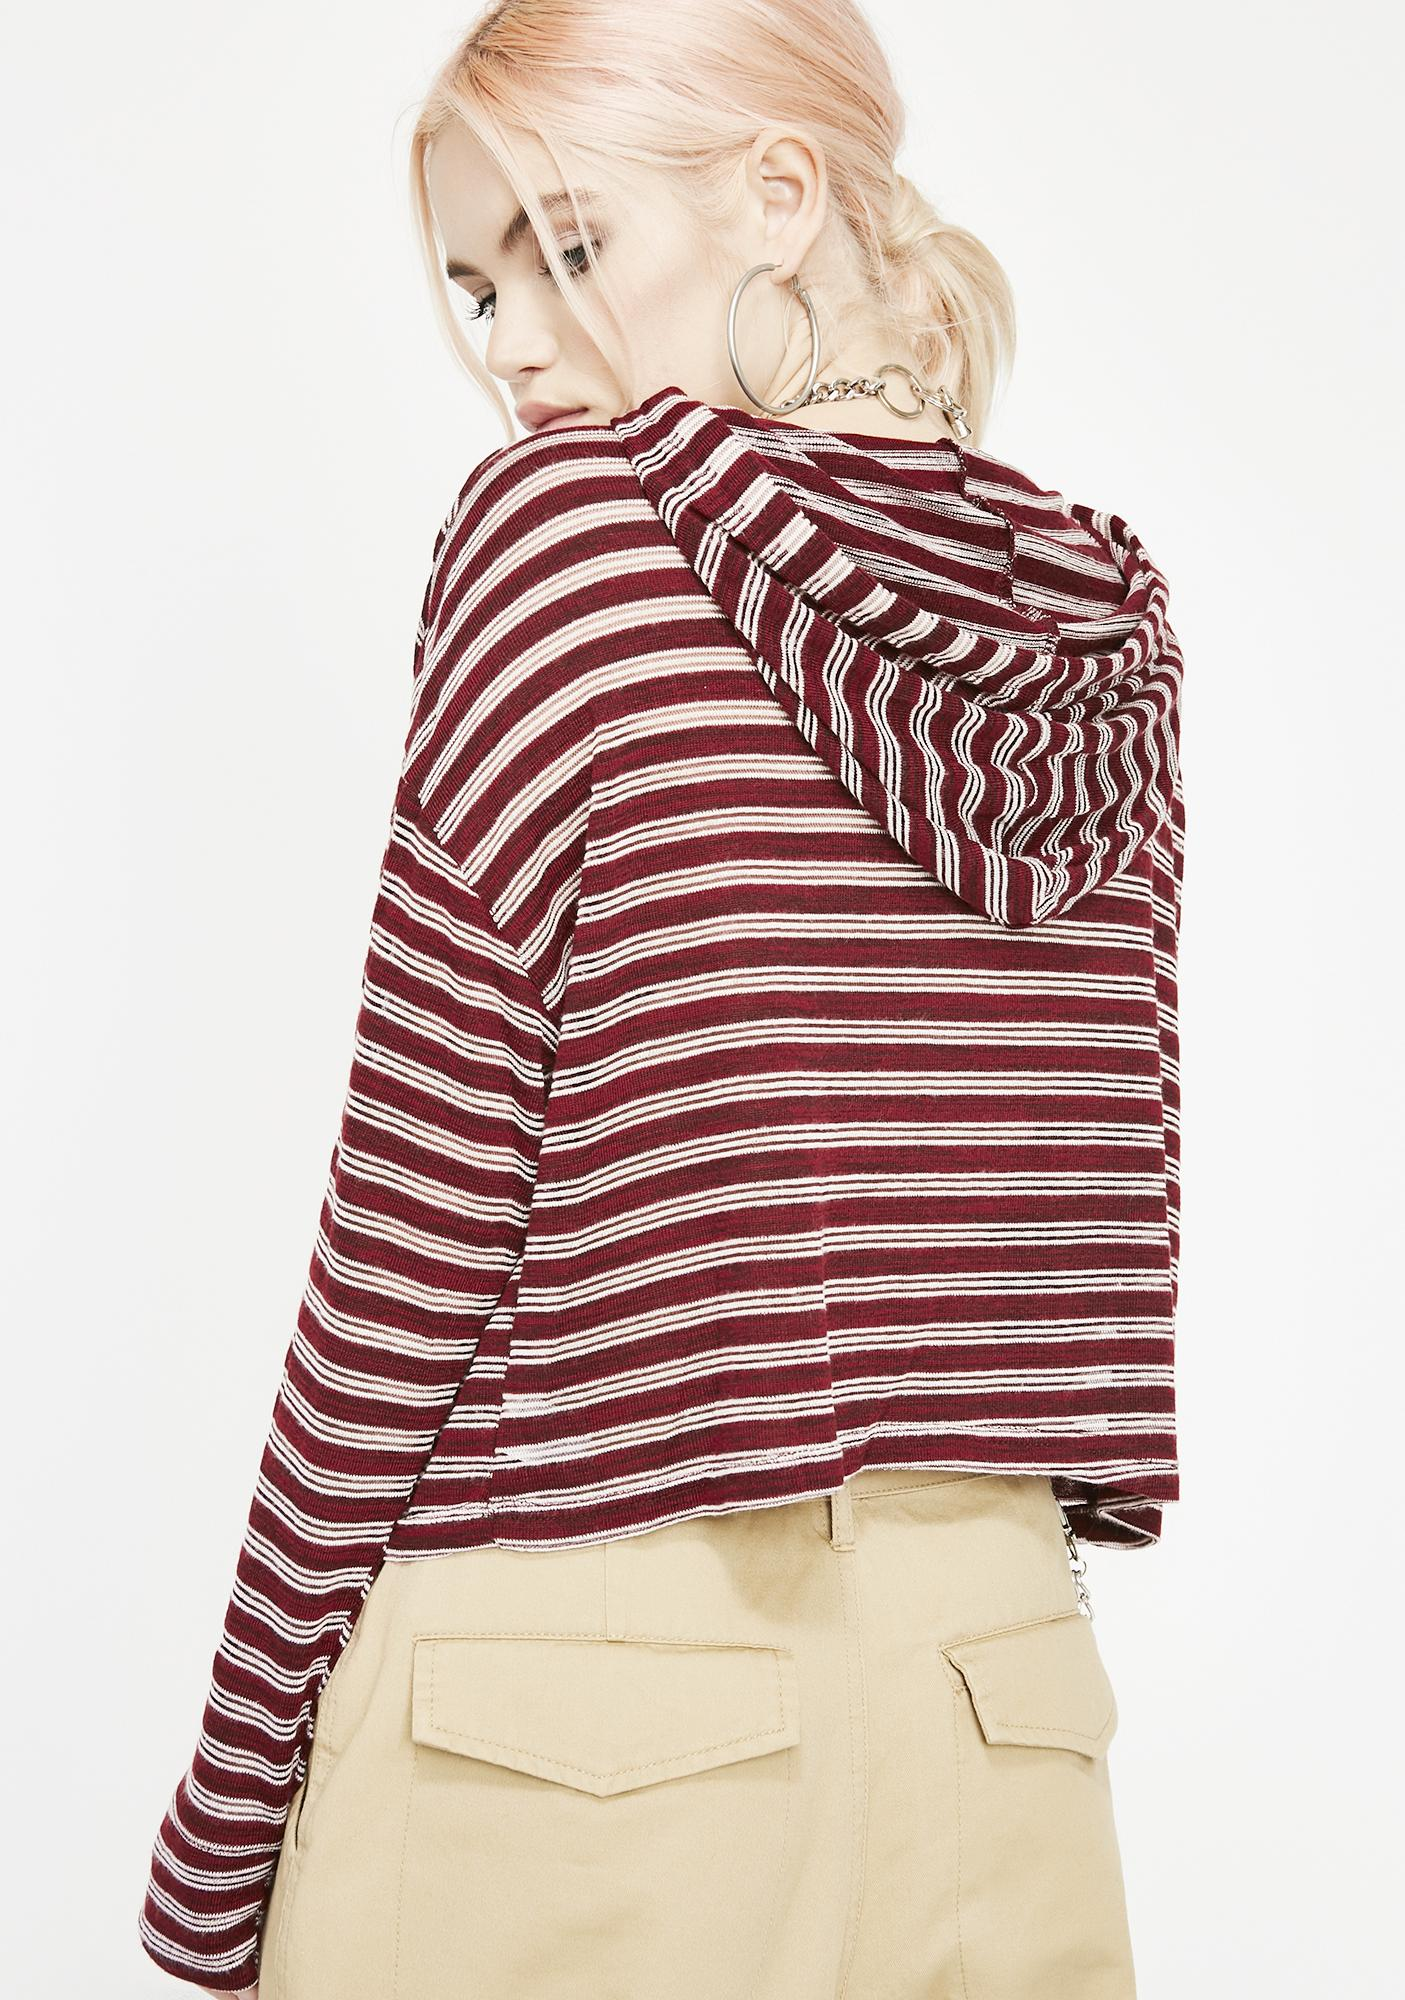 Coolin' Out Cropped Hoodie